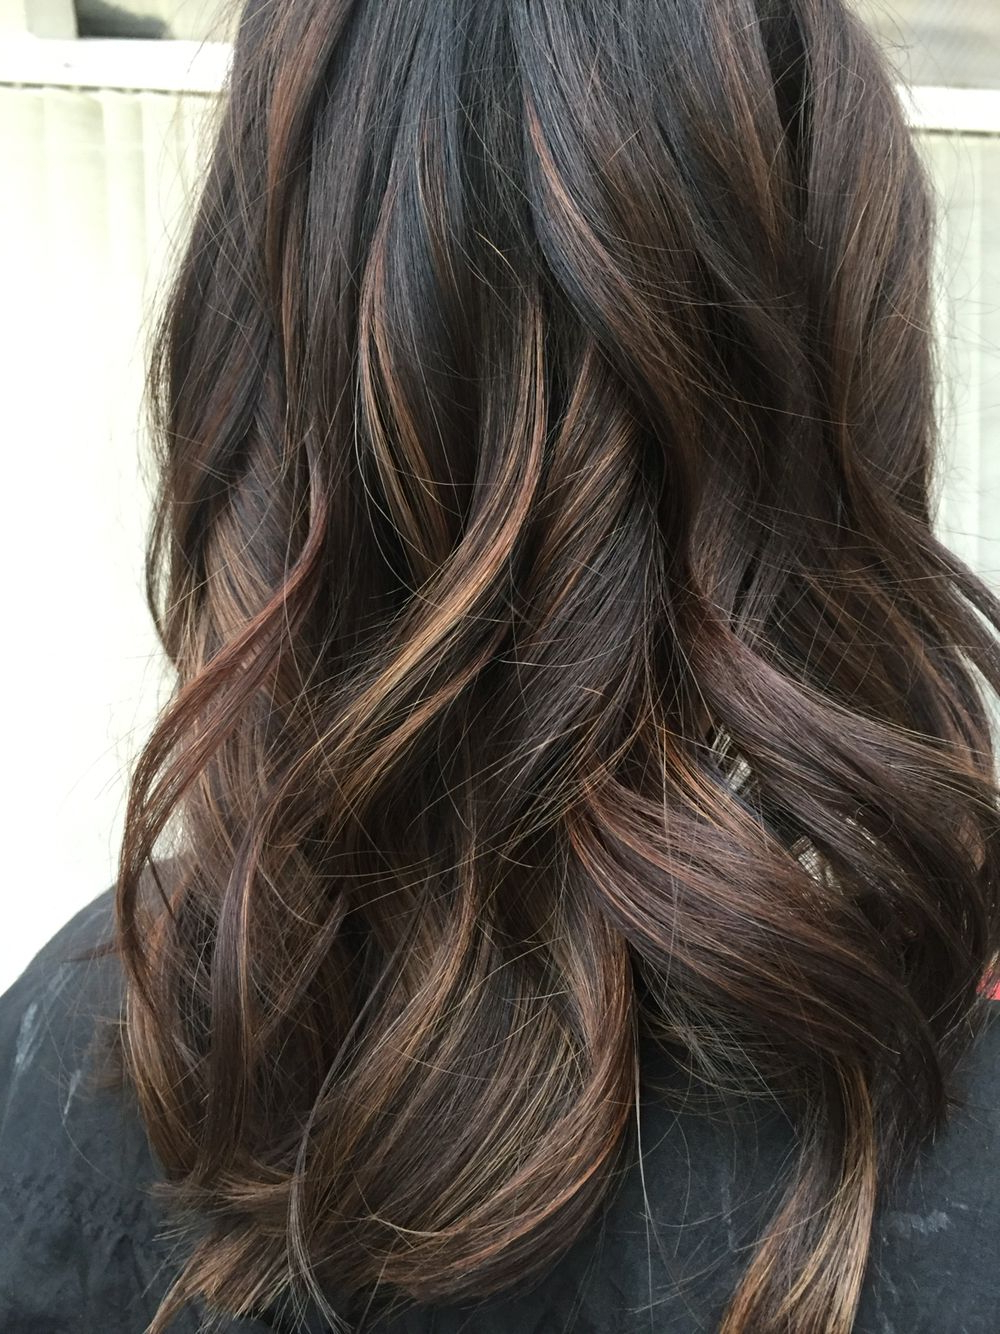 Dark Brunette Balayage With Caramel | Hair 's | Pinterest | Balayage for Curly Dark Brown Bob Hairstyles With Partial Balayage